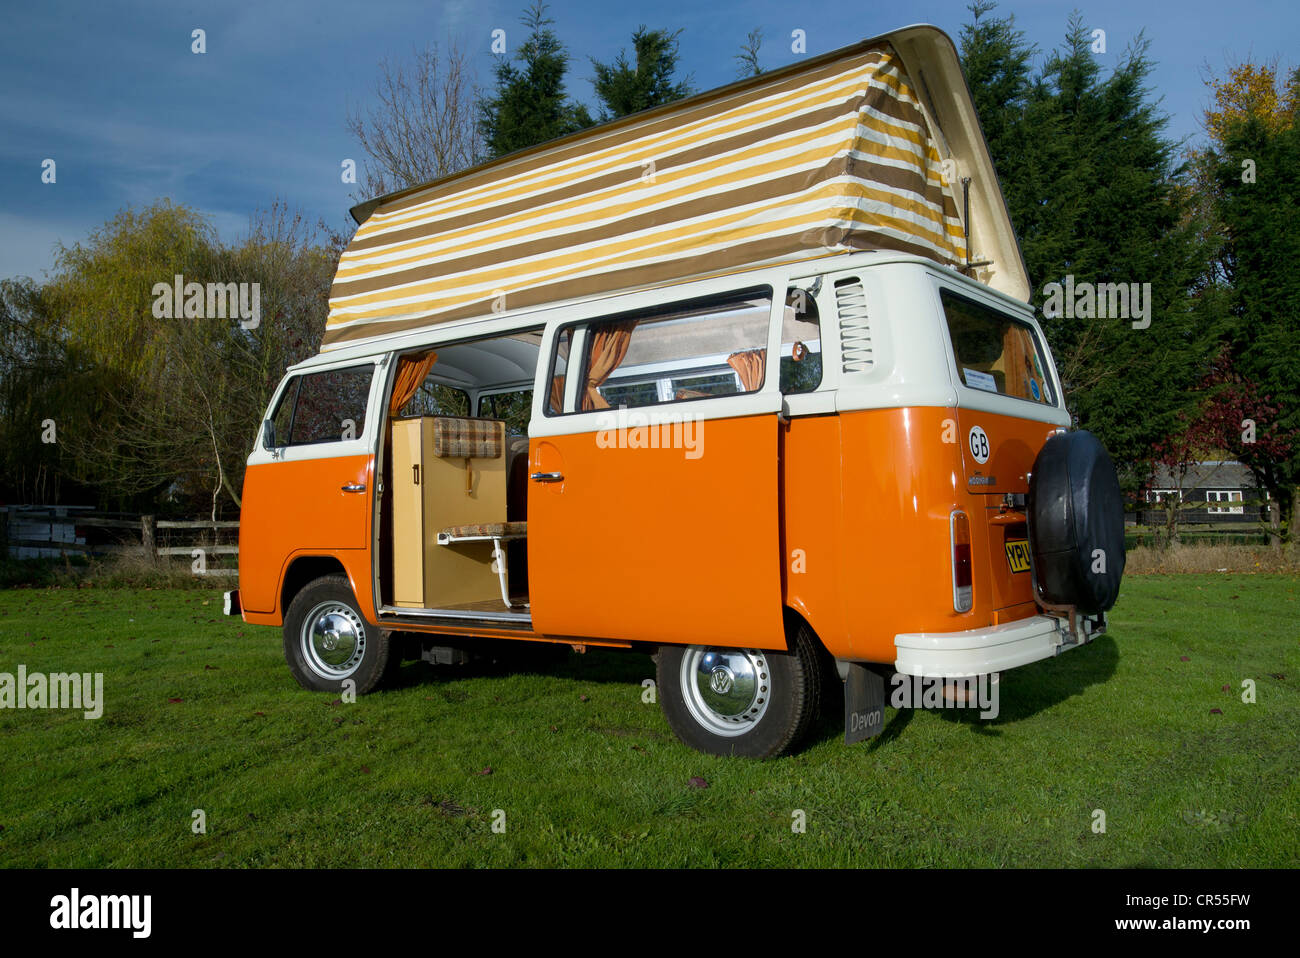 Bay WIndow VW Volkswagen Camper Van Micro Bus With Pop Top Roof Up